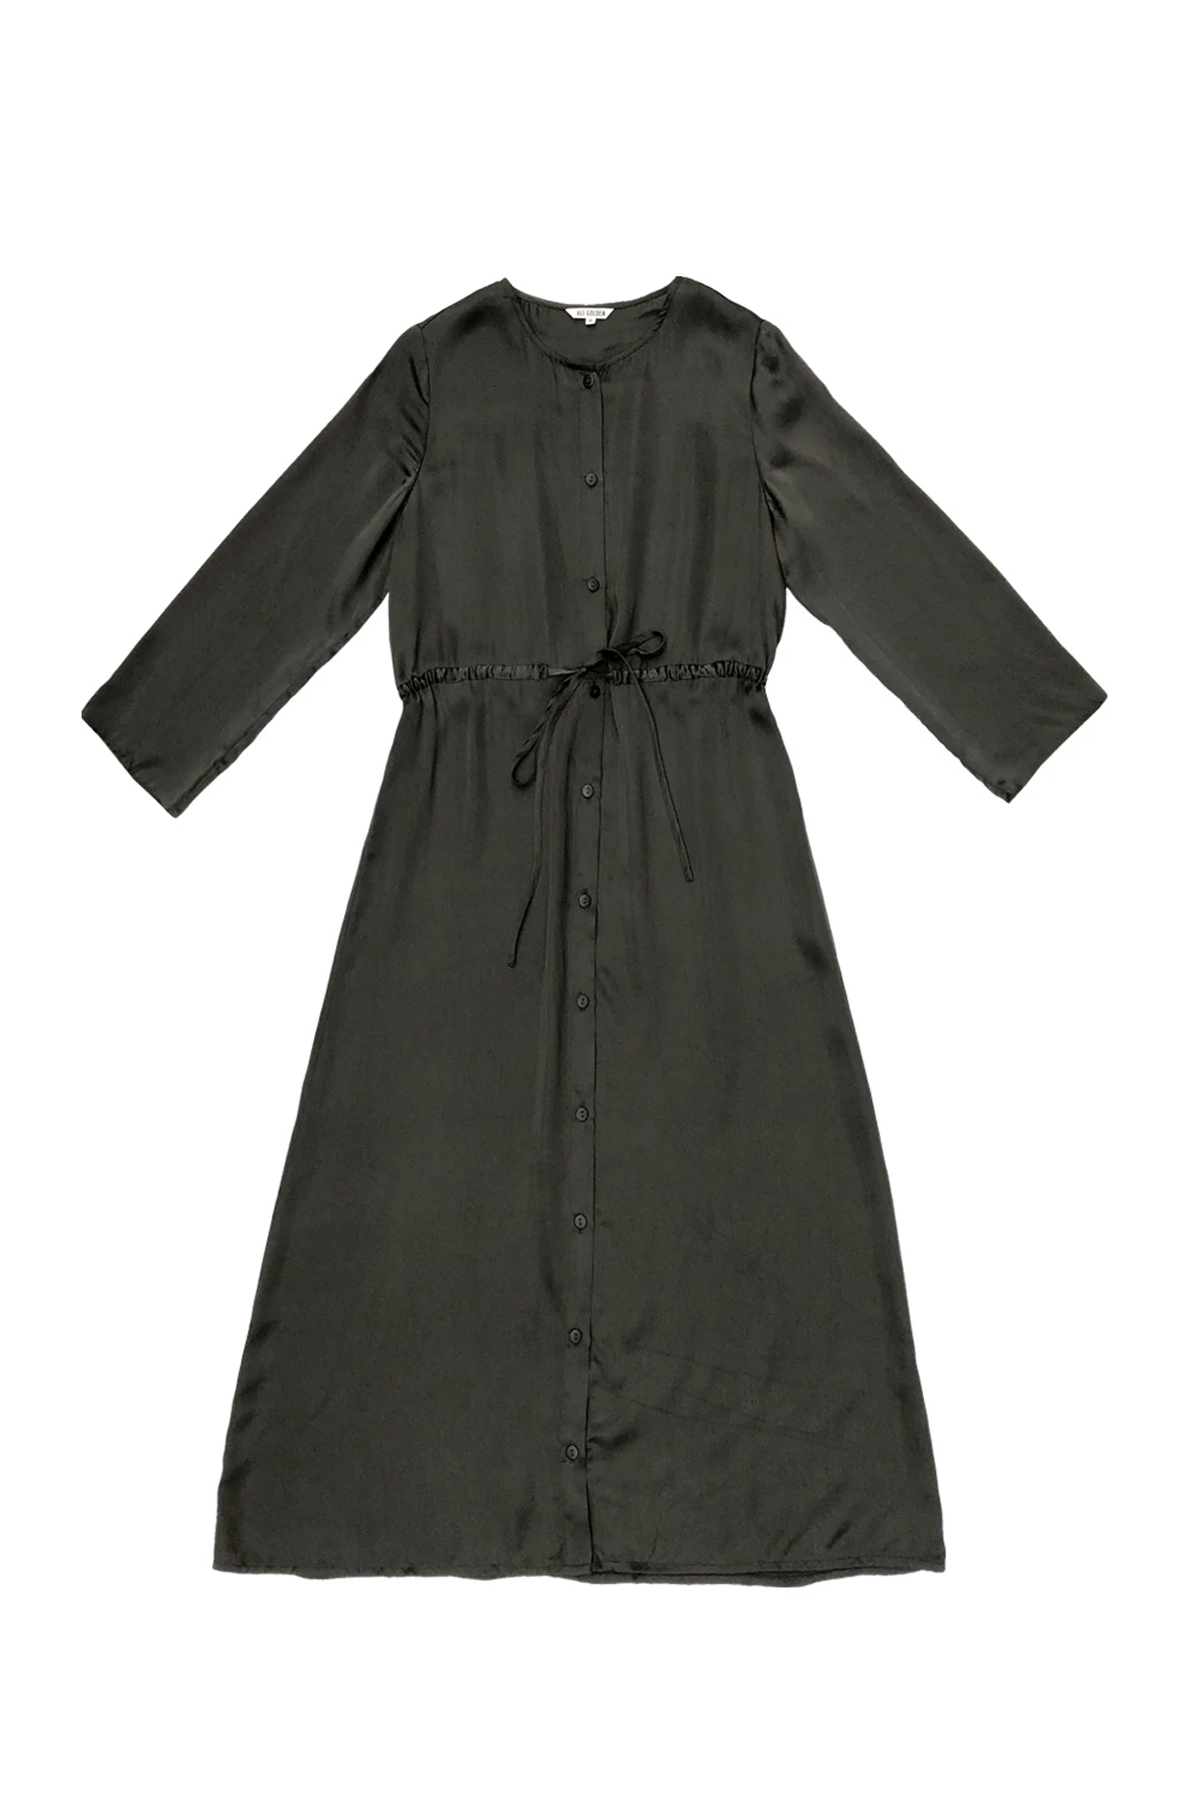 Long Sleeve Button Down Maxi Dress in Mud